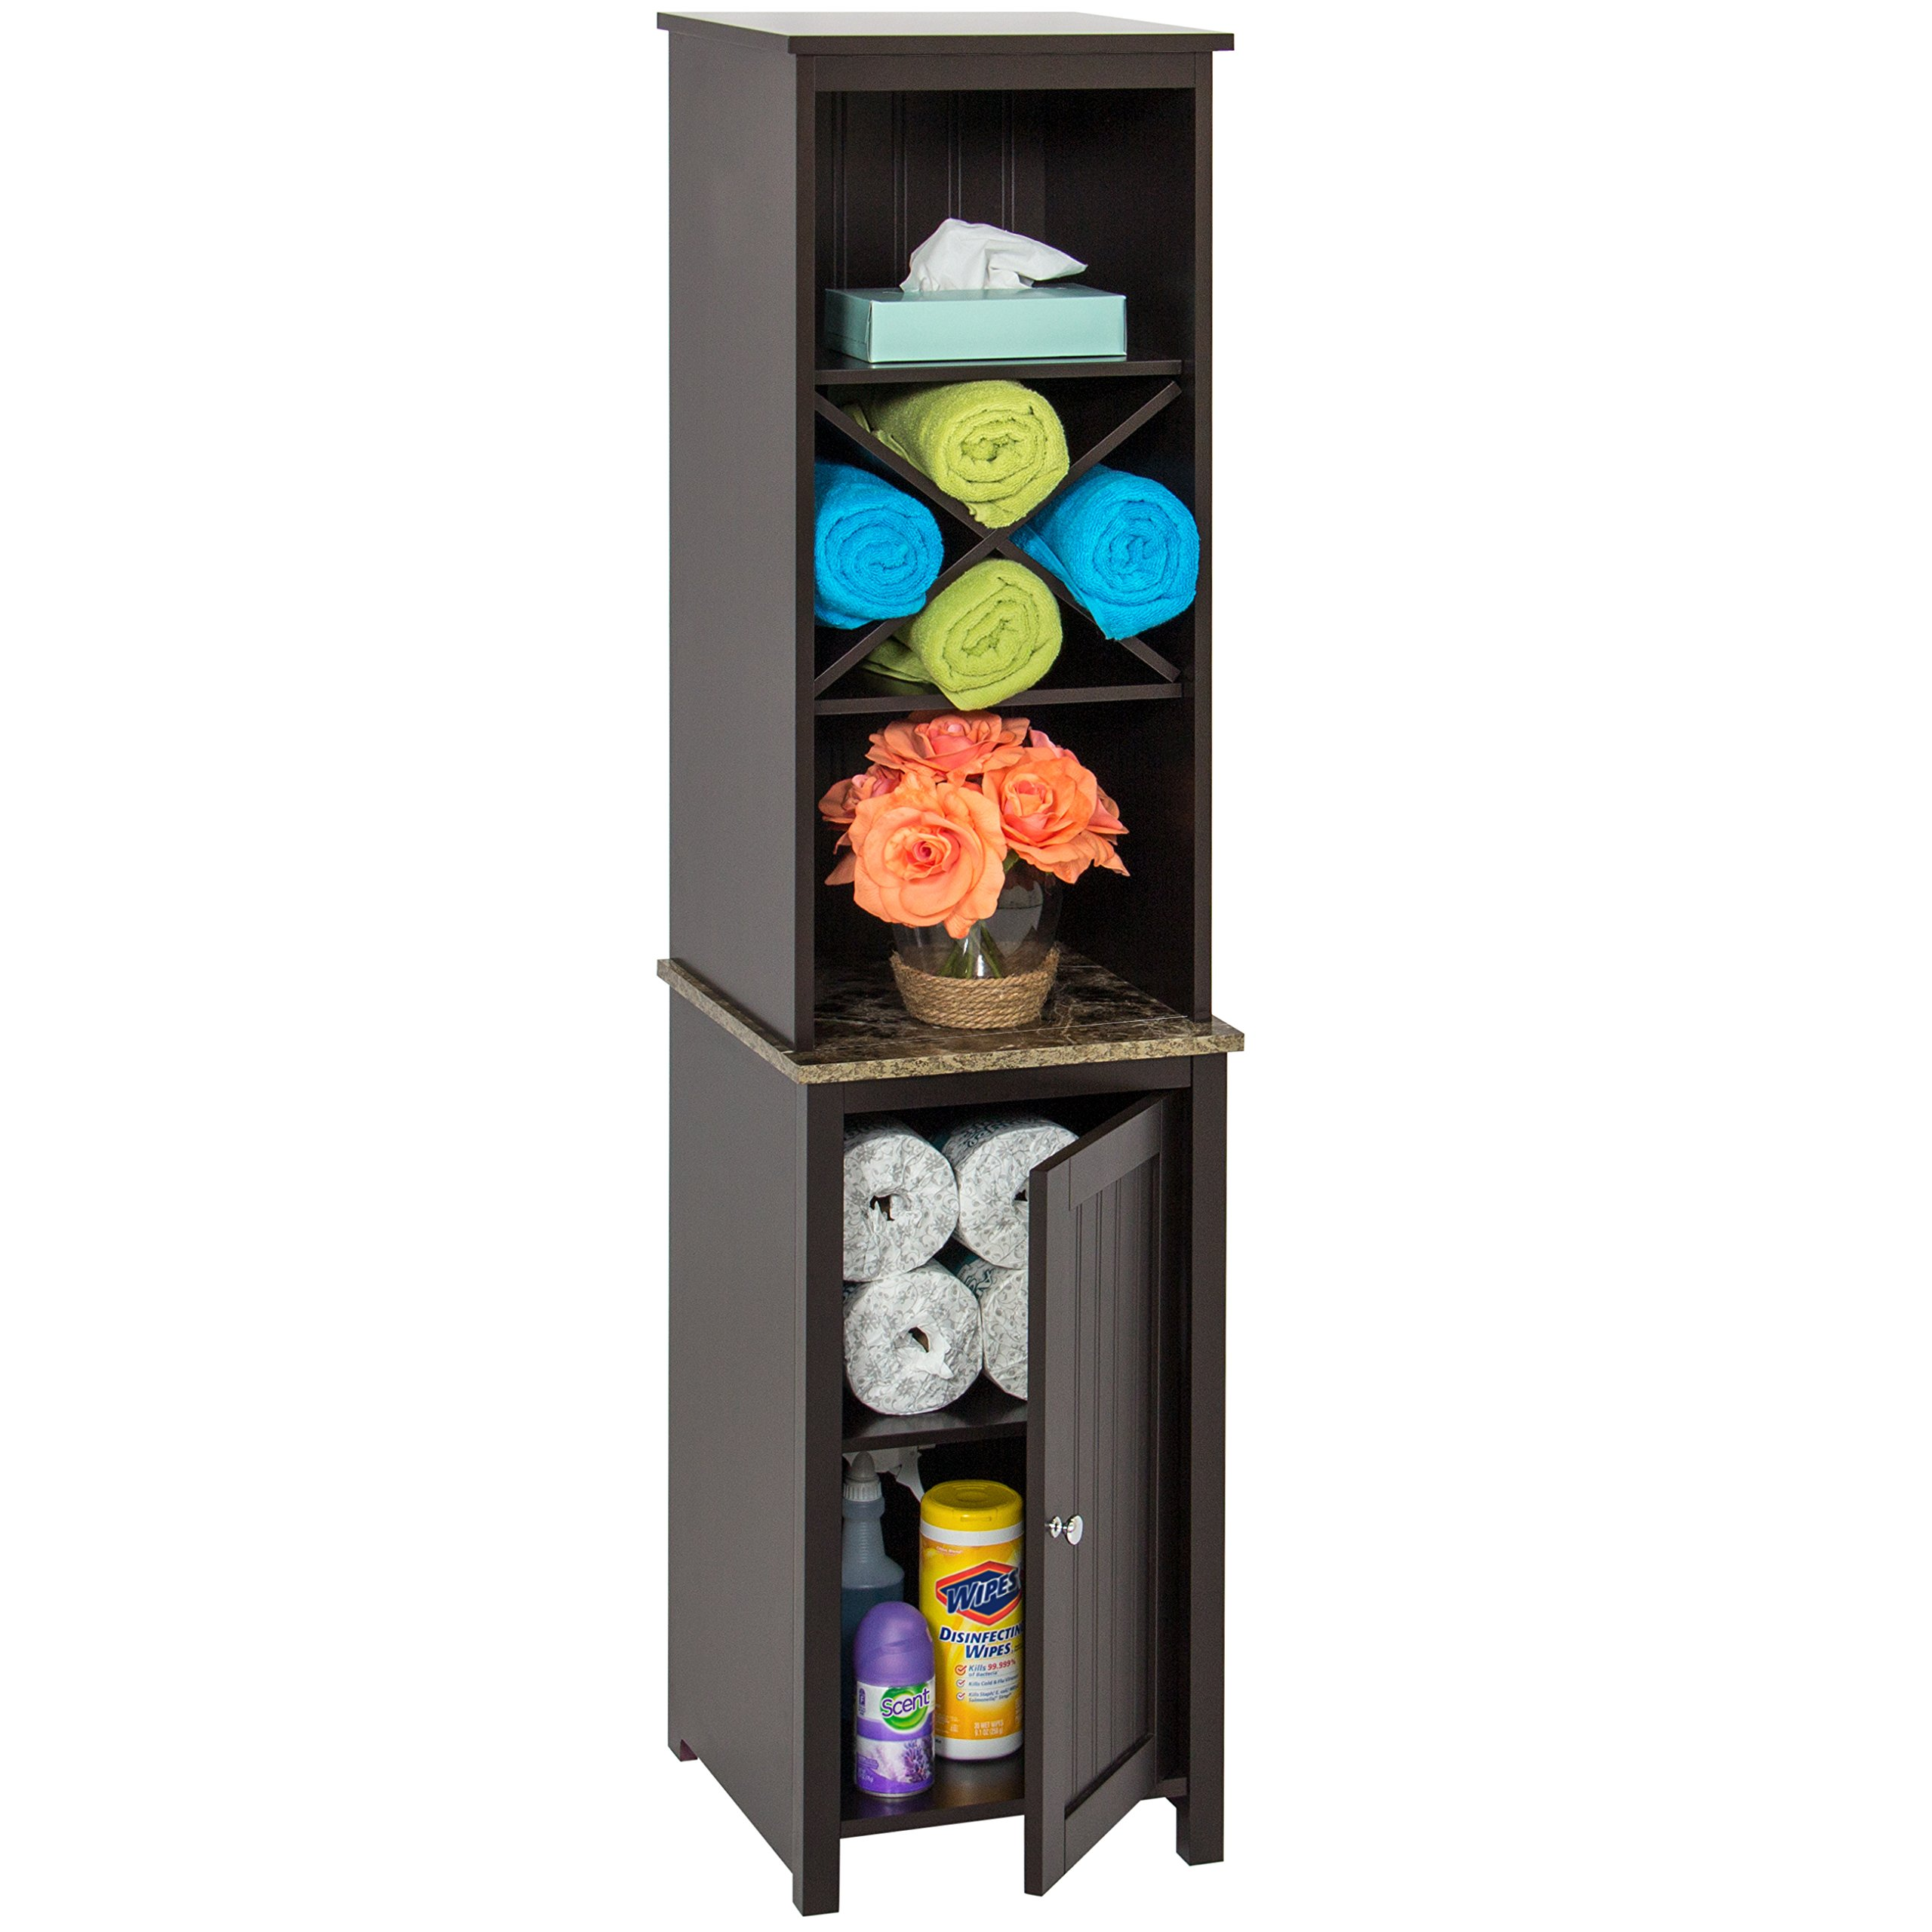 Best Choice Products Wooden Bathroom Space Saving Standing Tall Floor Tower Storage Cabinet Organizer w/Faux-Slate Adjustable Shelves - Brown by Best Choice Products